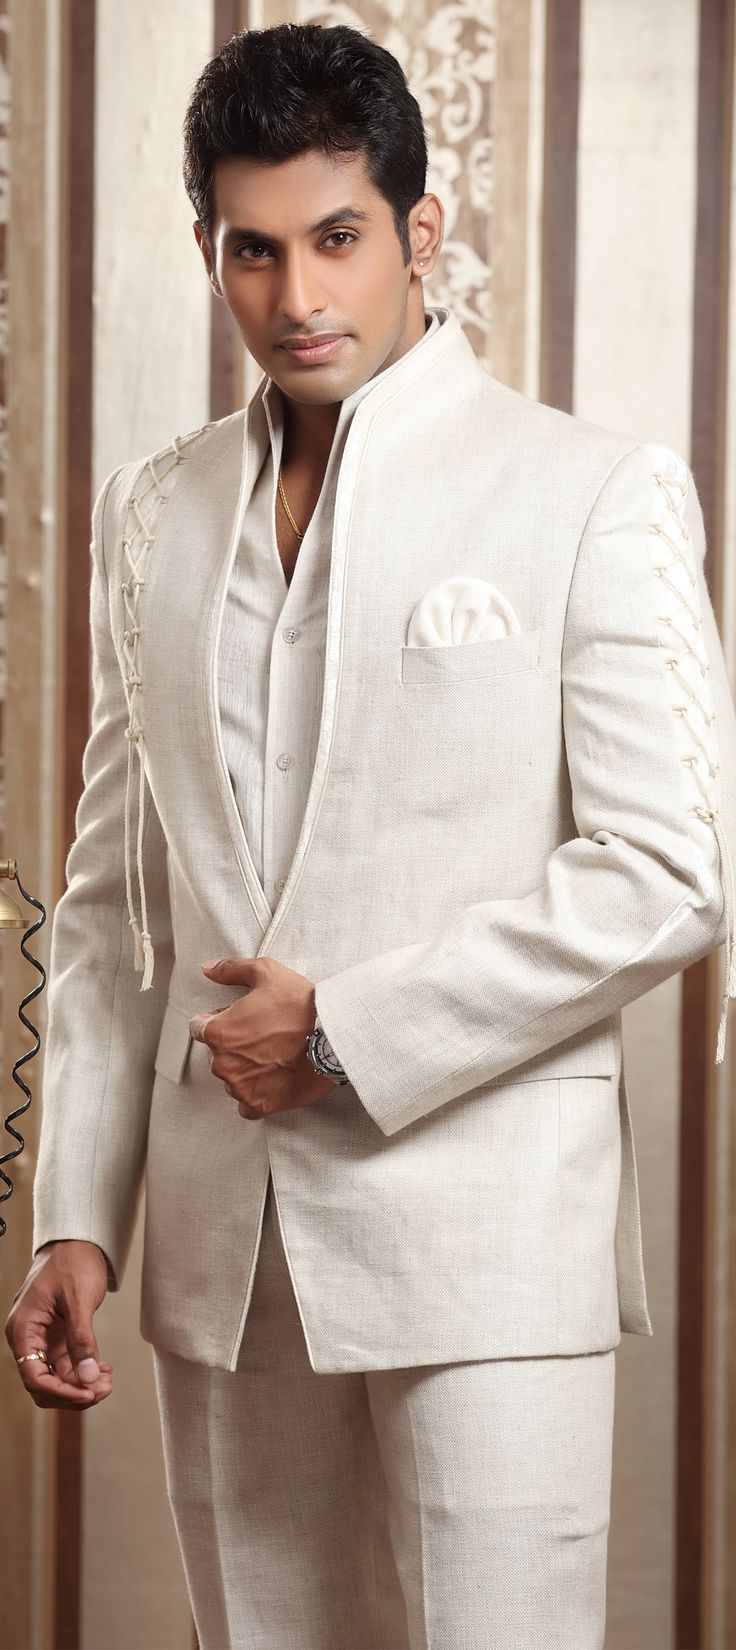 12687: White and Off White color family stitched 2 Piece Suit (with shirt) .